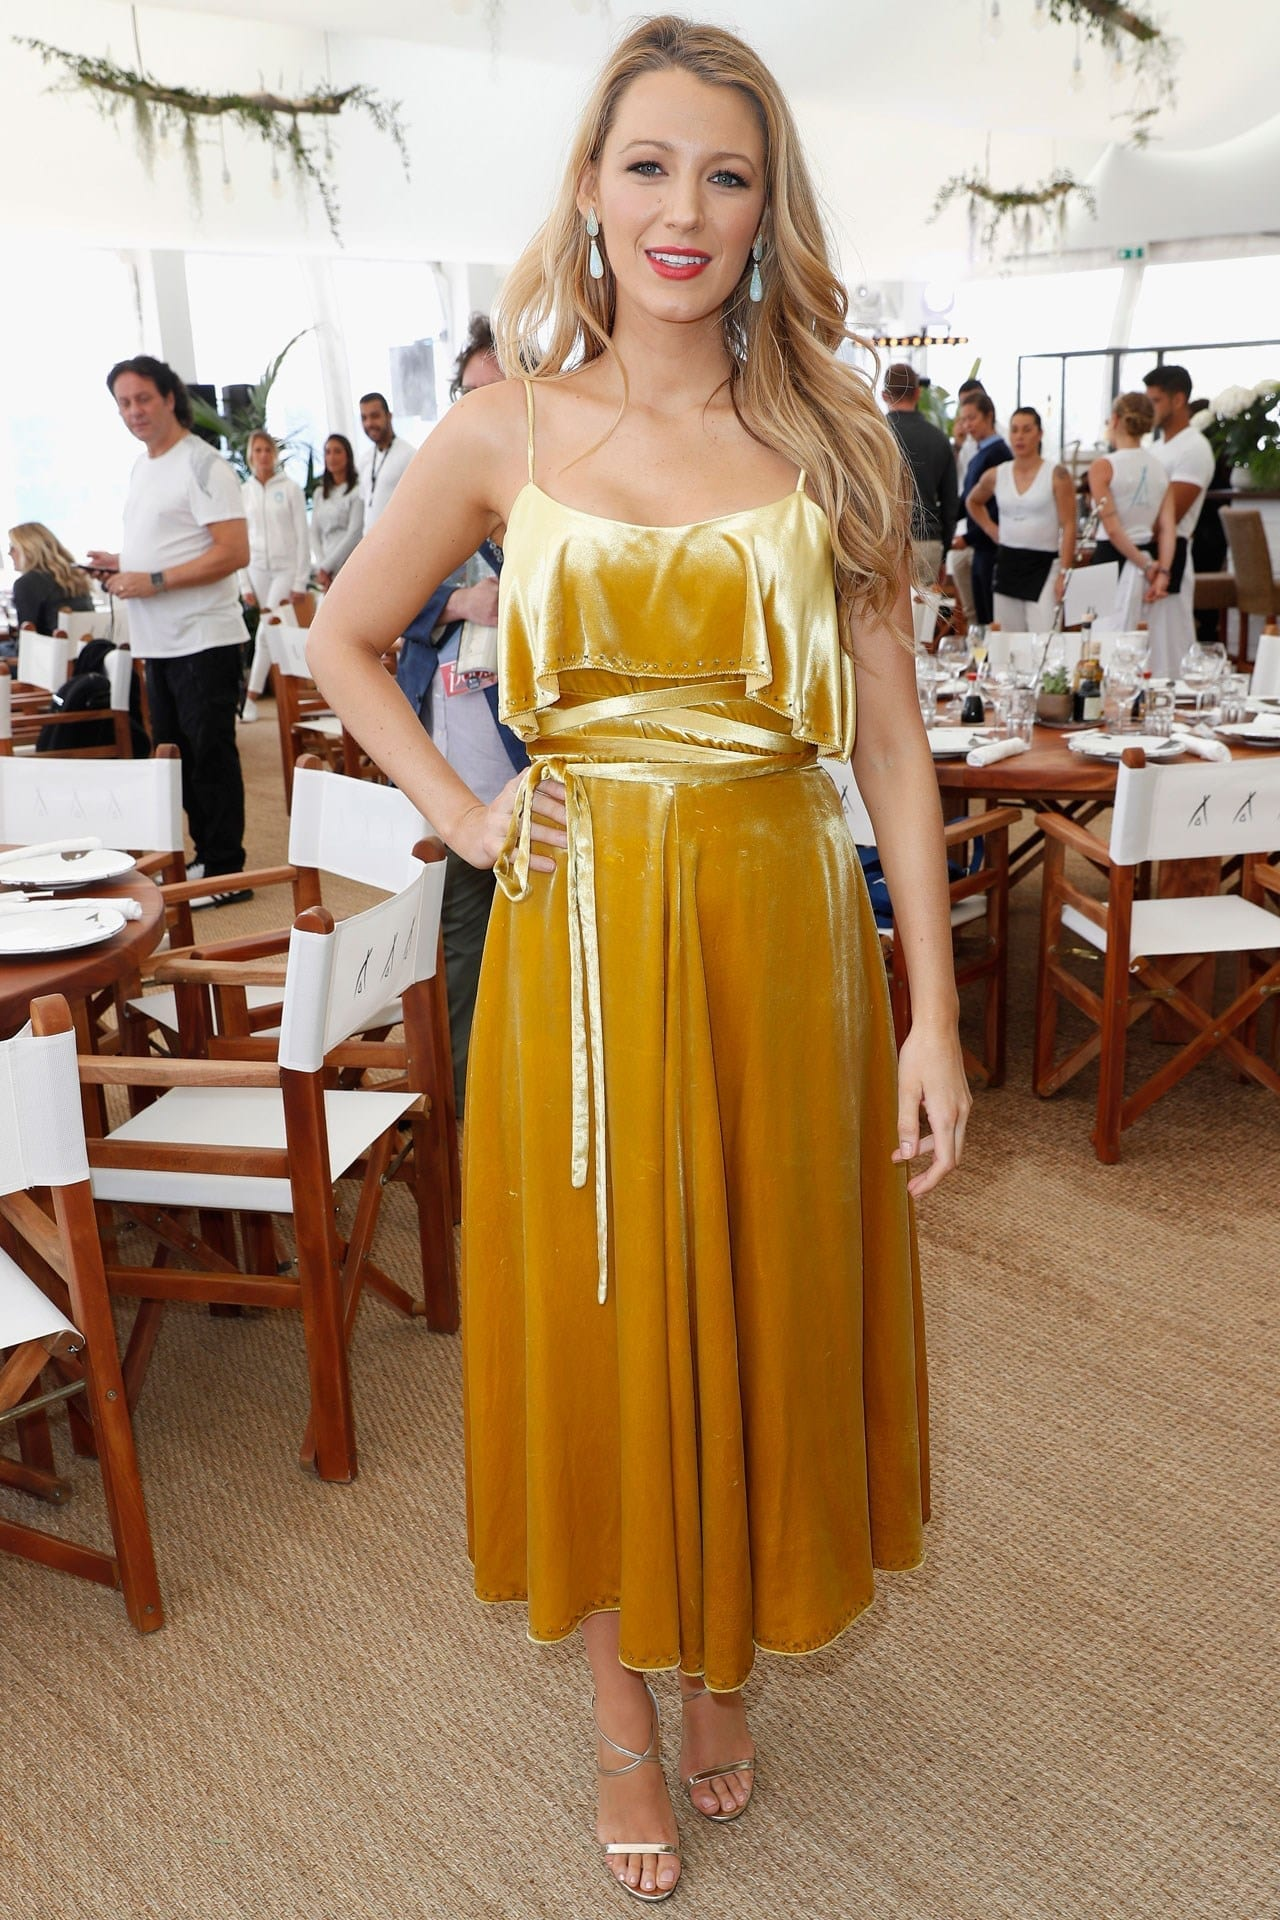 valentino blake lively cannes 2016, ciao povery, festival di cannes 2016, festival di cannes 2016 look più brutti, abiti festival di cannes 2016, theladycracy.it, elisa bellino, fashion blog 2016, fashion blogger italiane, fashion blogger famose, fashion blogger italia,